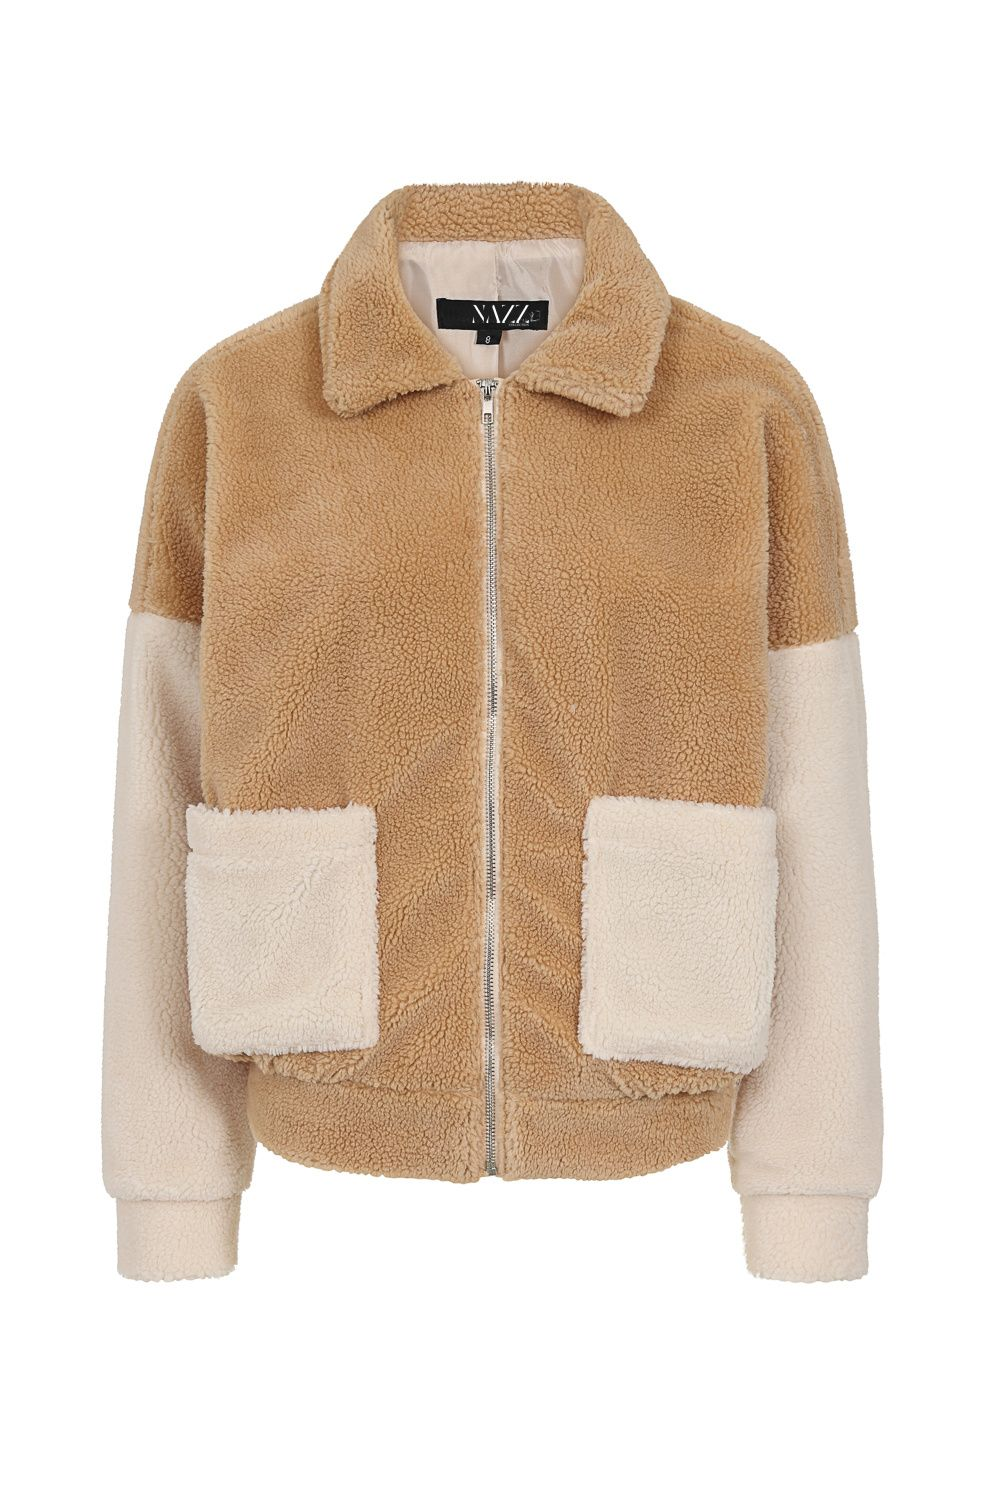 Addison Two Cream and Tan Fur Teddy Bomber Jacket